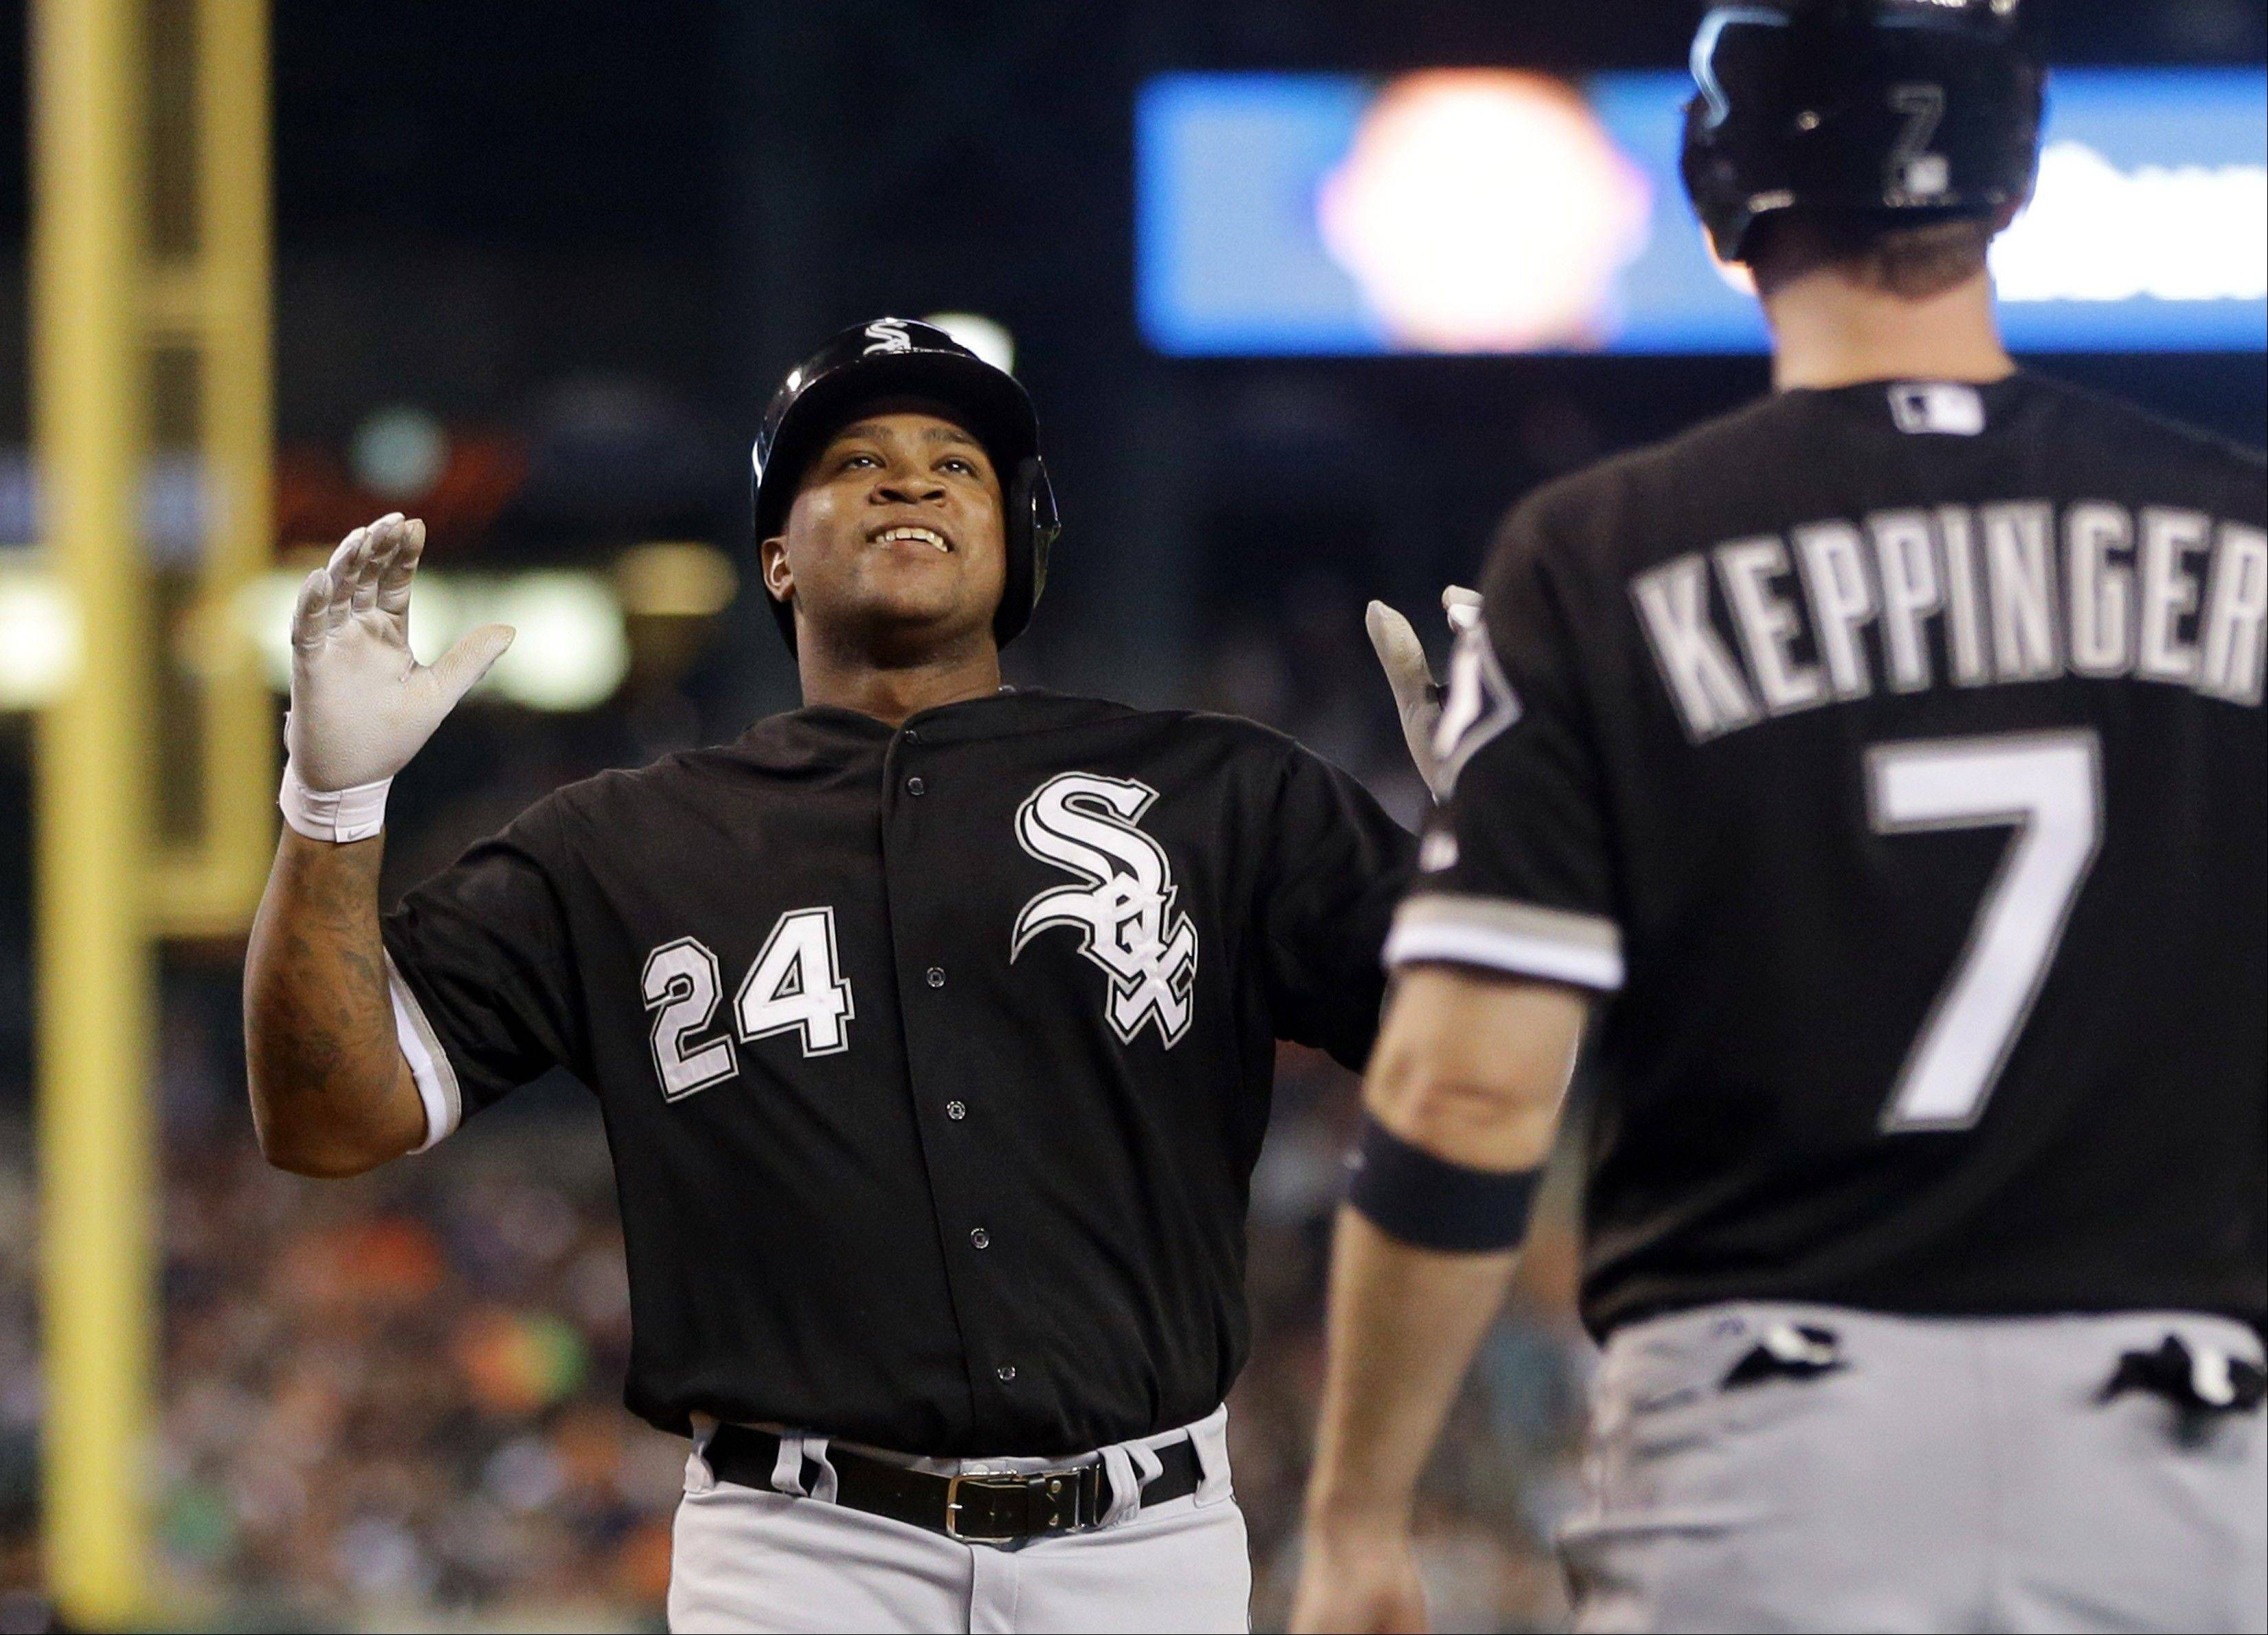 Chicago White Sox's Dayan Viciedo reaches home plate after connecting for a three-run home run off Detroit Tigers relief pitcher Al Alburquerque during the eighth inning of a baseball game in Detroit, Tuesday, July 9, 2013.